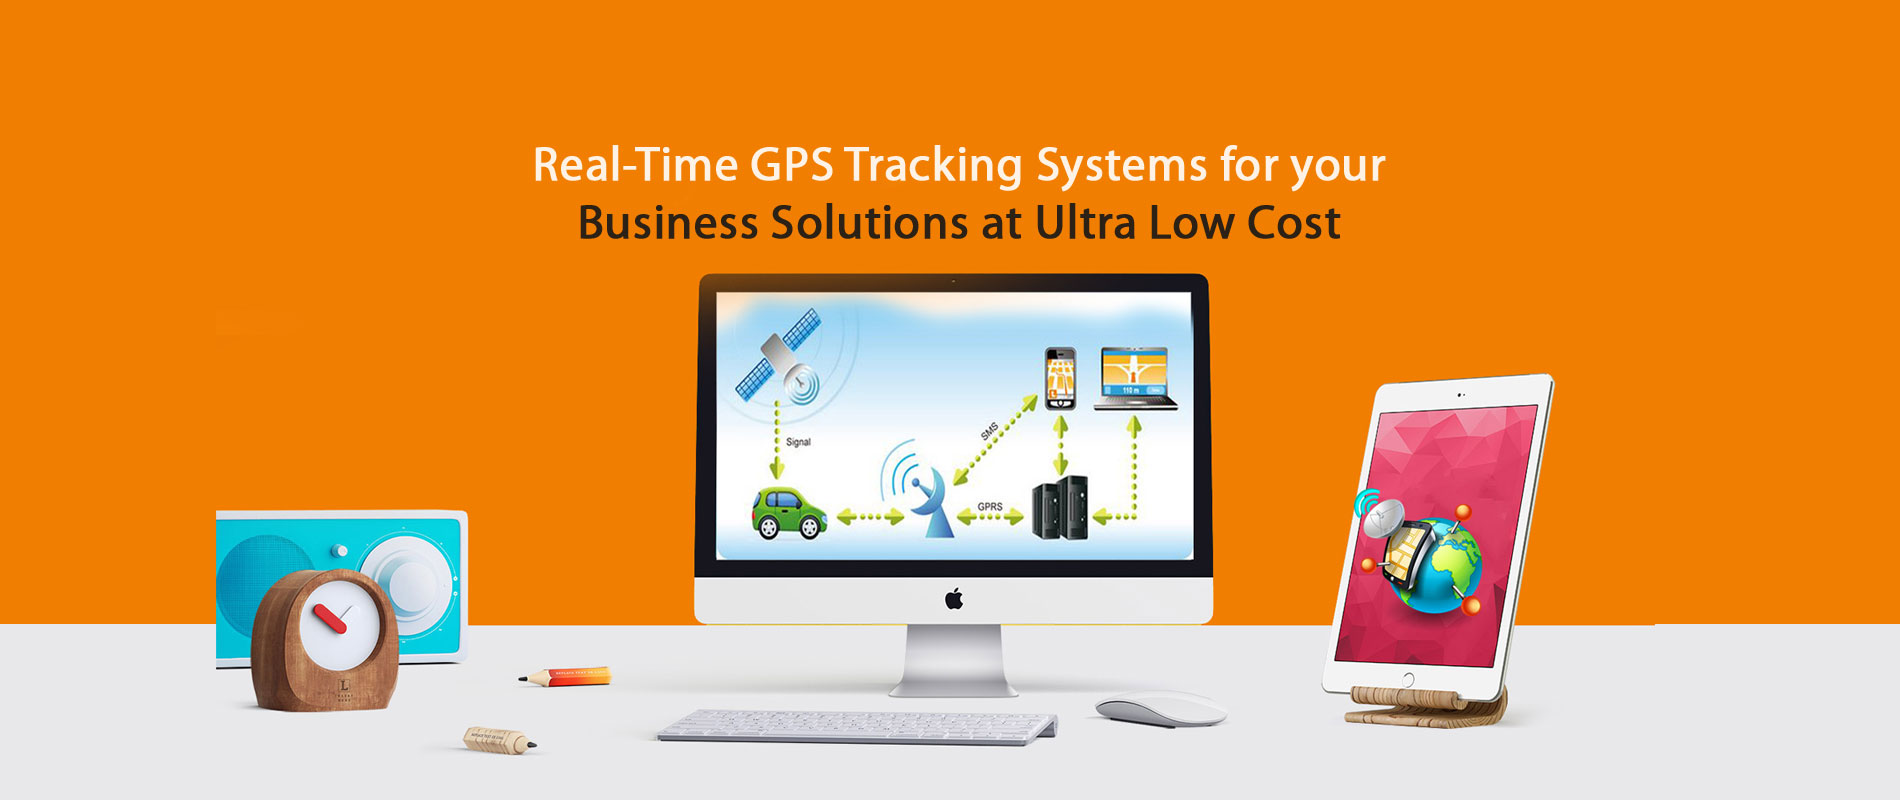 Real-Time GPS Tracking Systems for your Business Solutions